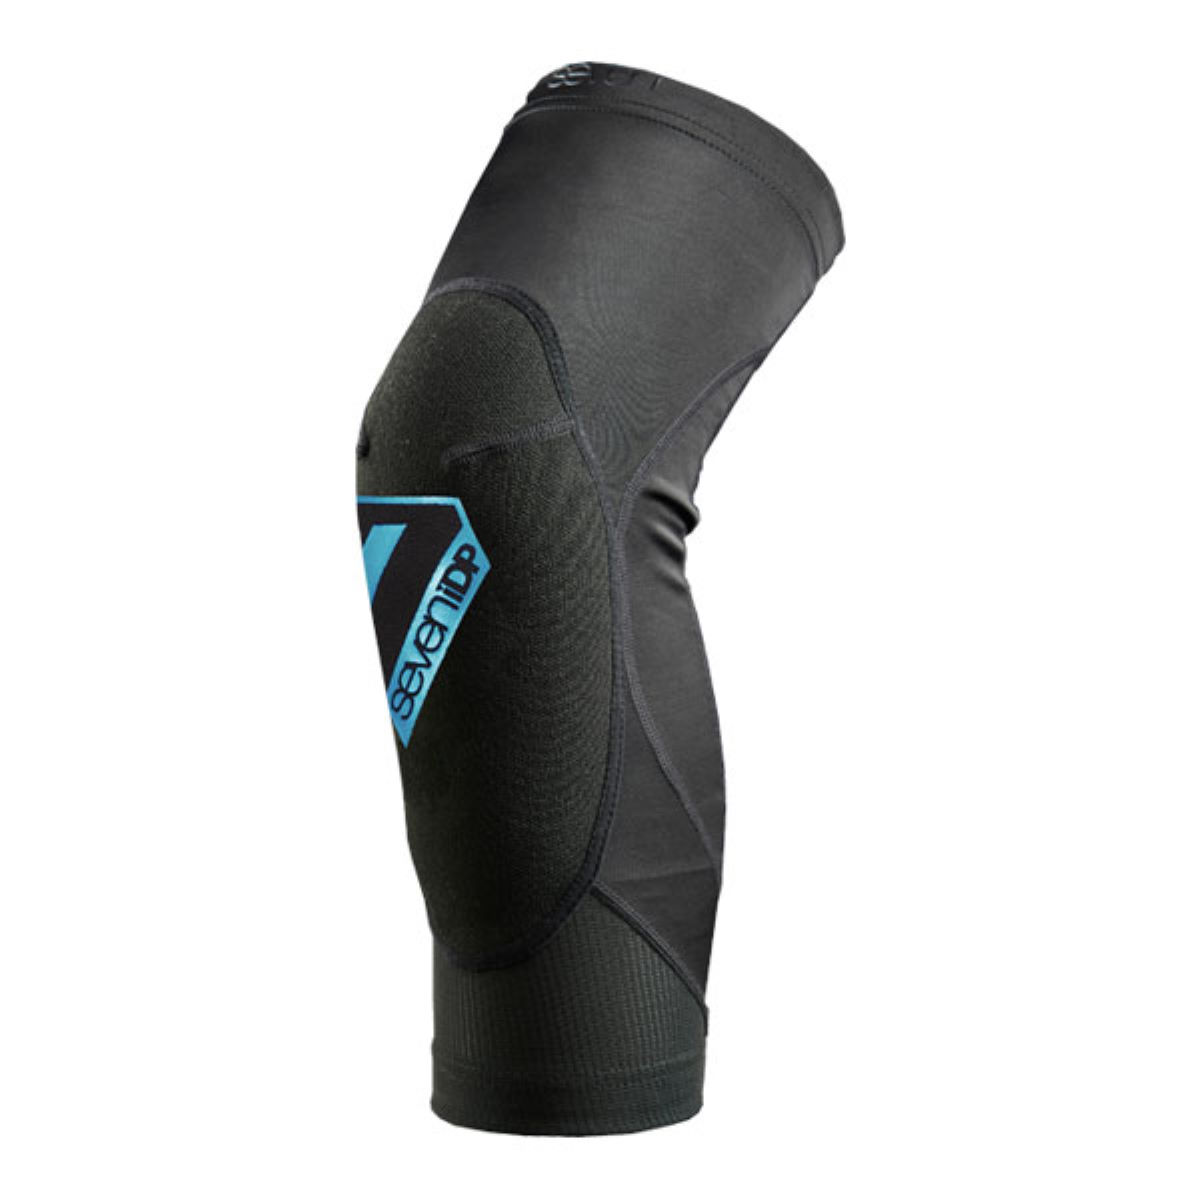 7 iDP 7 iDP Youth Transition Knee Pads   Knee Pads